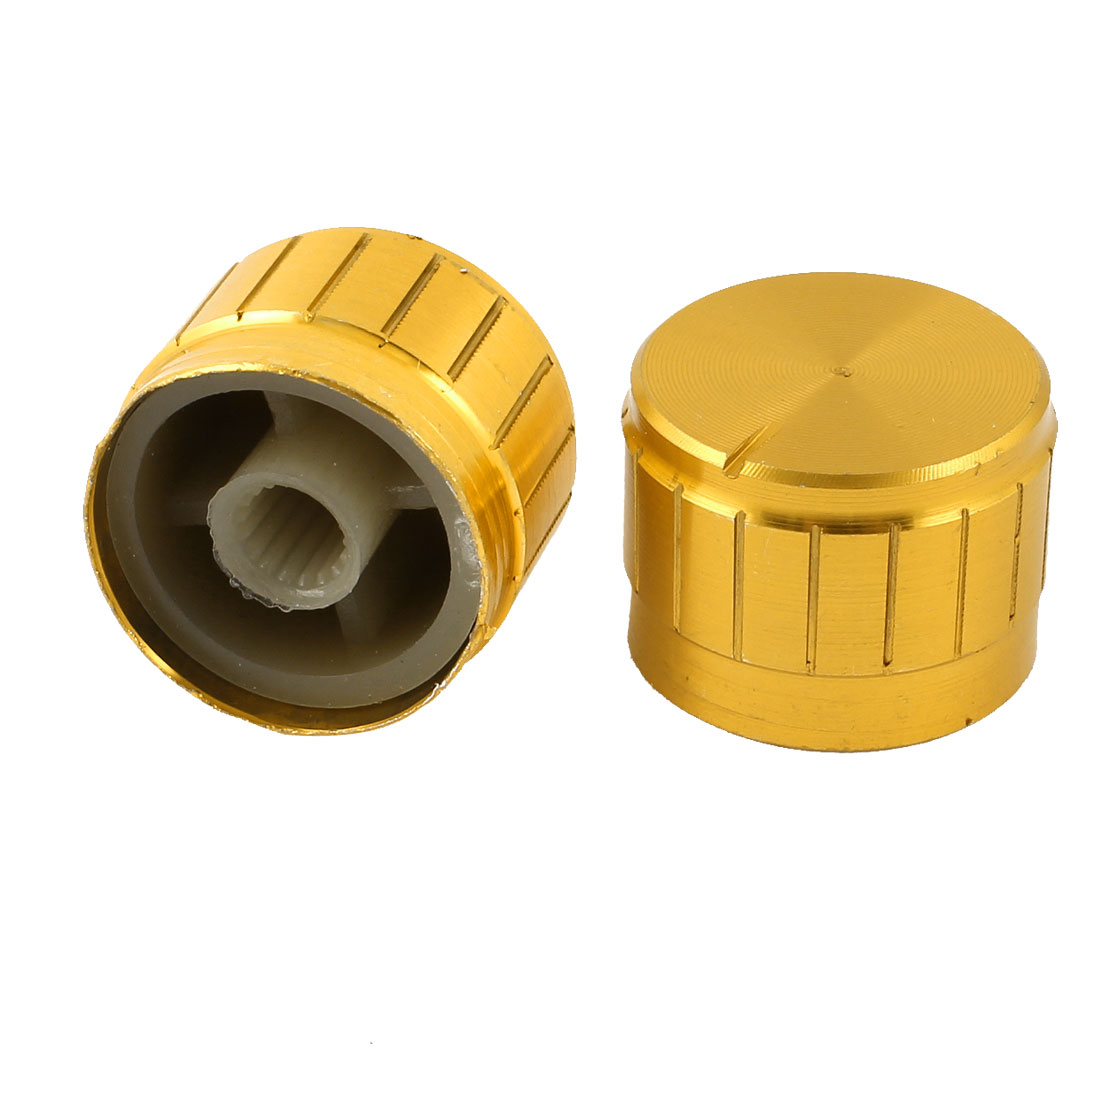 2 Pcs Gold Tone Volume Control Rotary Aluminum Potentiometer Knobs 23mm x 17mm